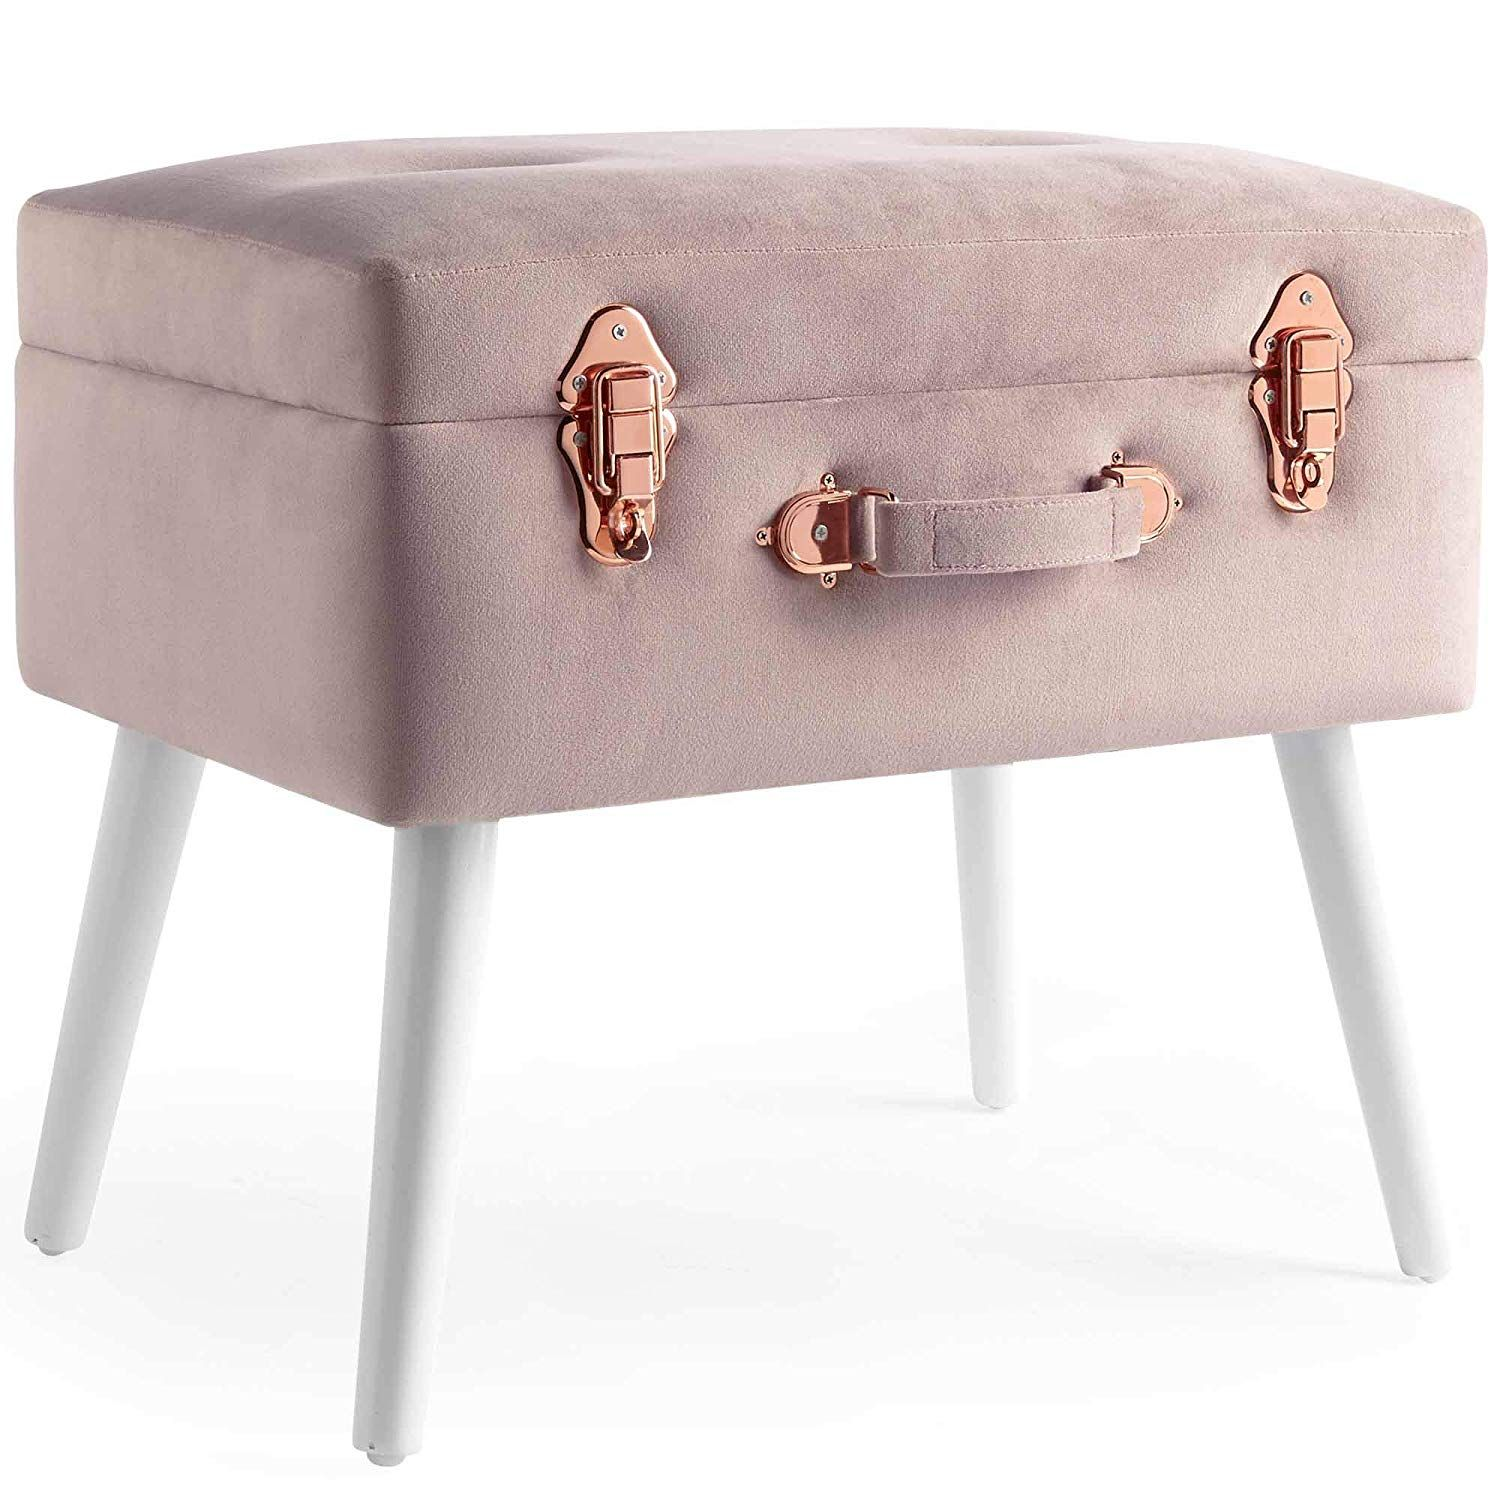 Surprising Amazon Com Beautify Pink Velvet Storage Trunk Footrest Pdpeps Interior Chair Design Pdpepsorg